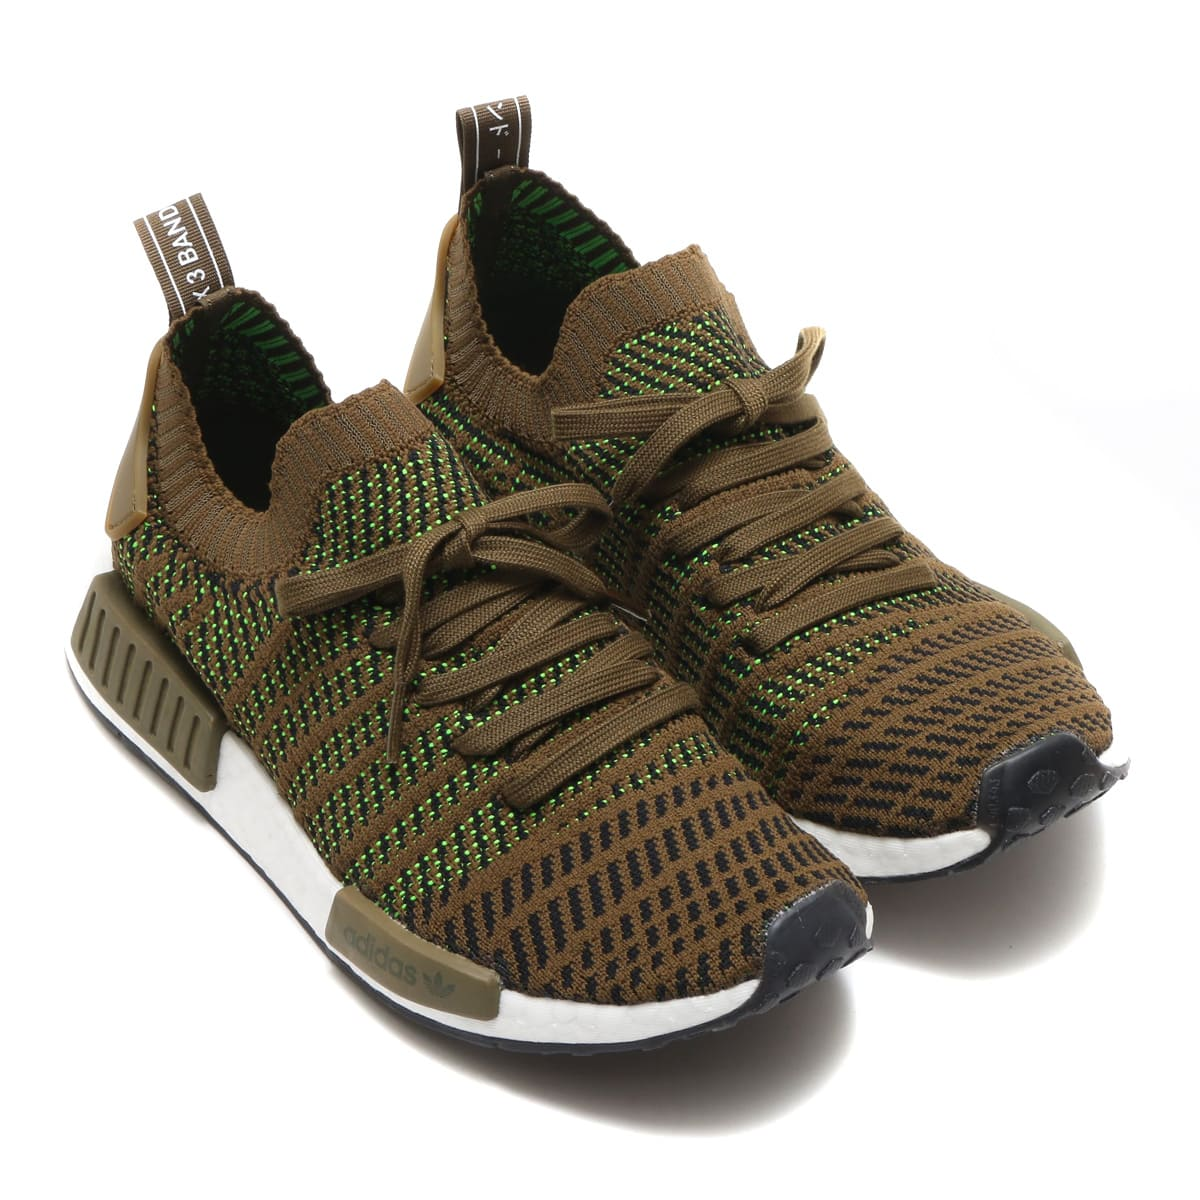 adidas Originals NMD_R1 STLT PK  Trace?Olive/Core Black/Solar Slime_photo_large